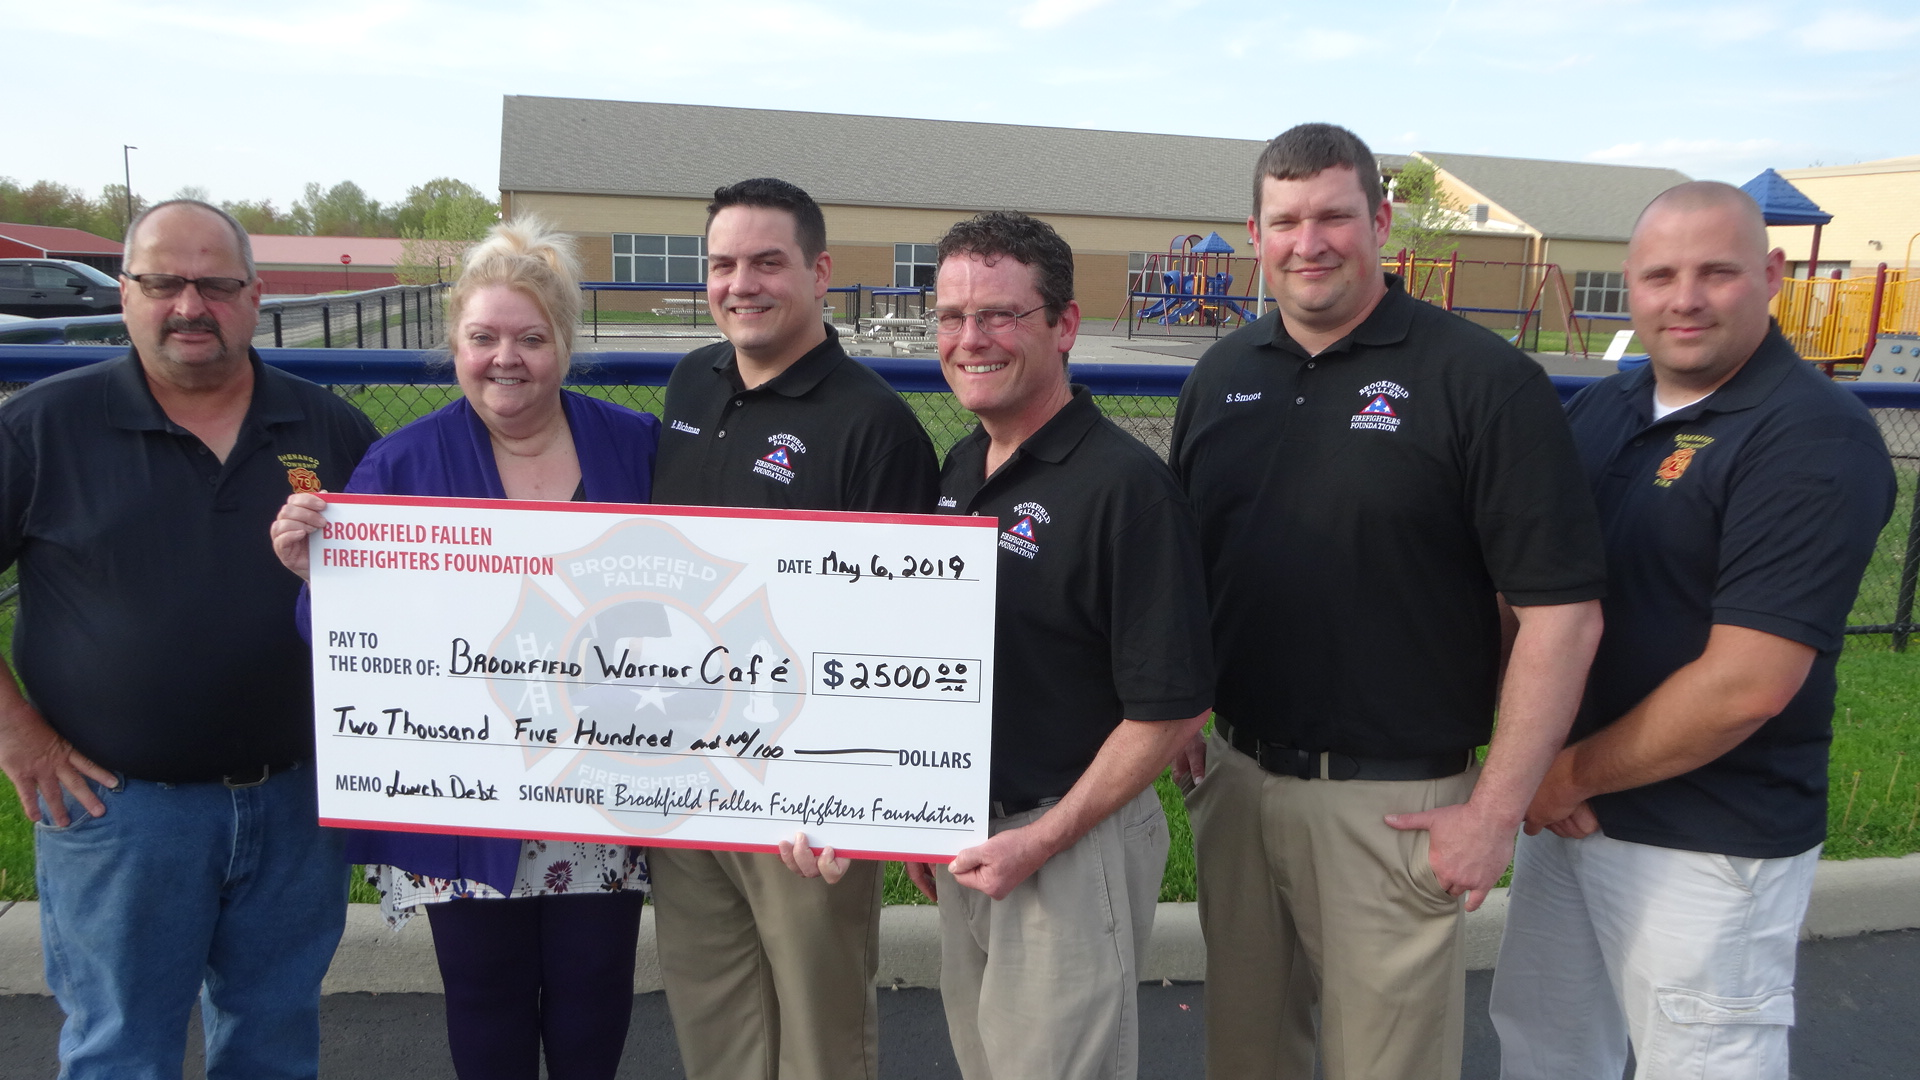 From left, Shenango Township Volunteer Fire Department Engineer Dave Foltz, Brookfield Local School District Cafeteria Director Donna Bailey, Brookfield Fallen Firefighters Foundation representatives Randy Richman, Matt Gordon and Steve Smoot, and Shenango Fire Chief Justin Barnes.